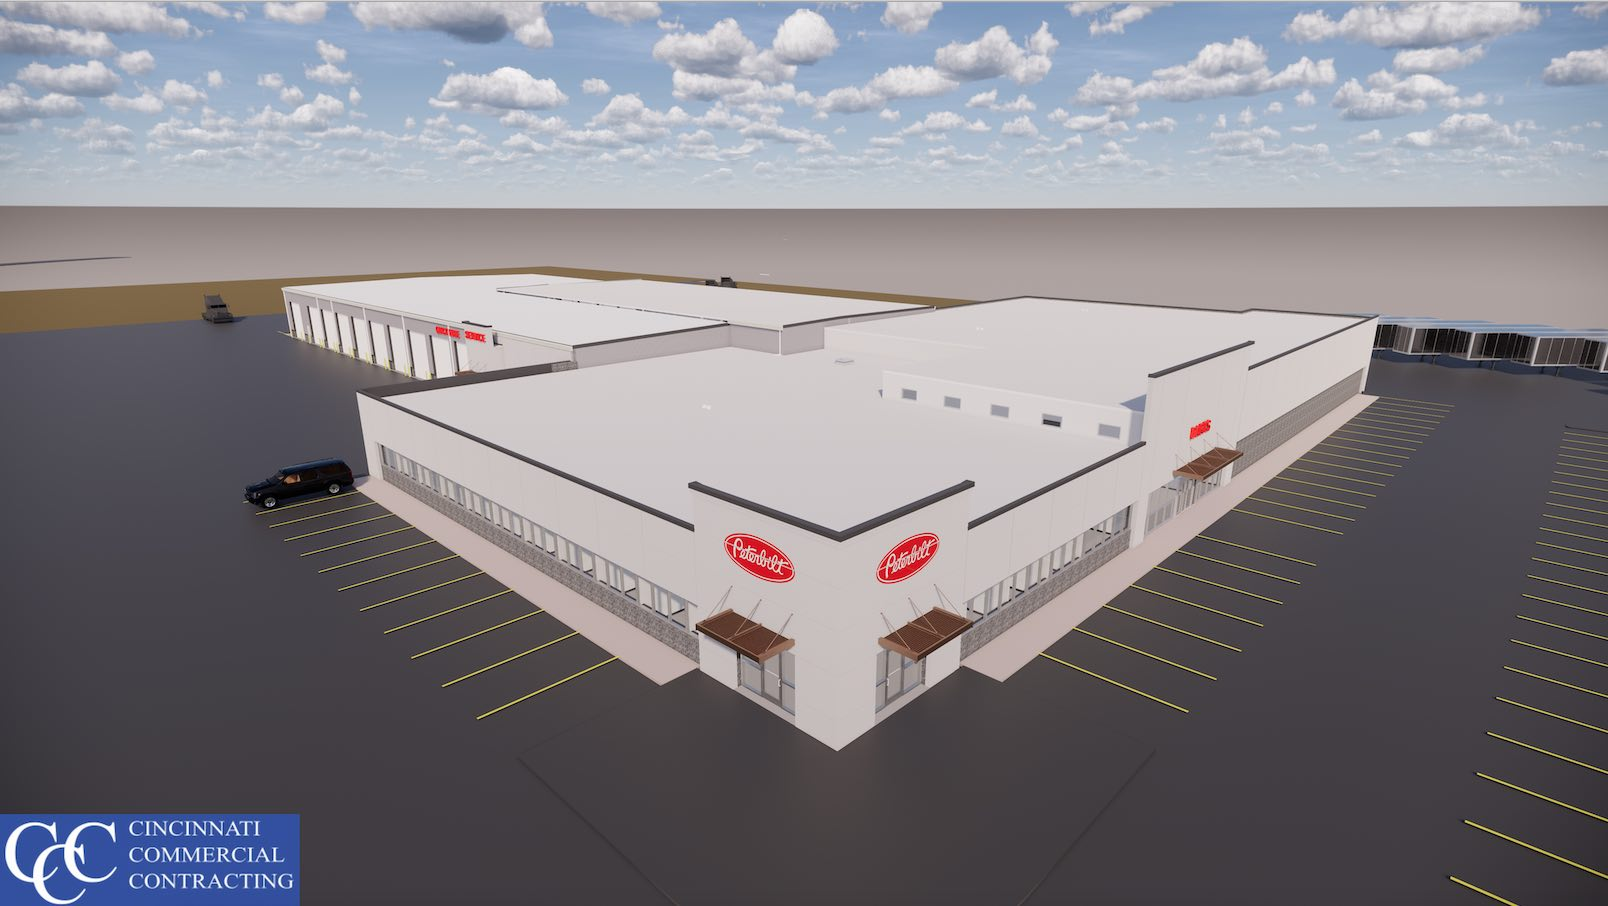 CCC rendering for Peterbilt project